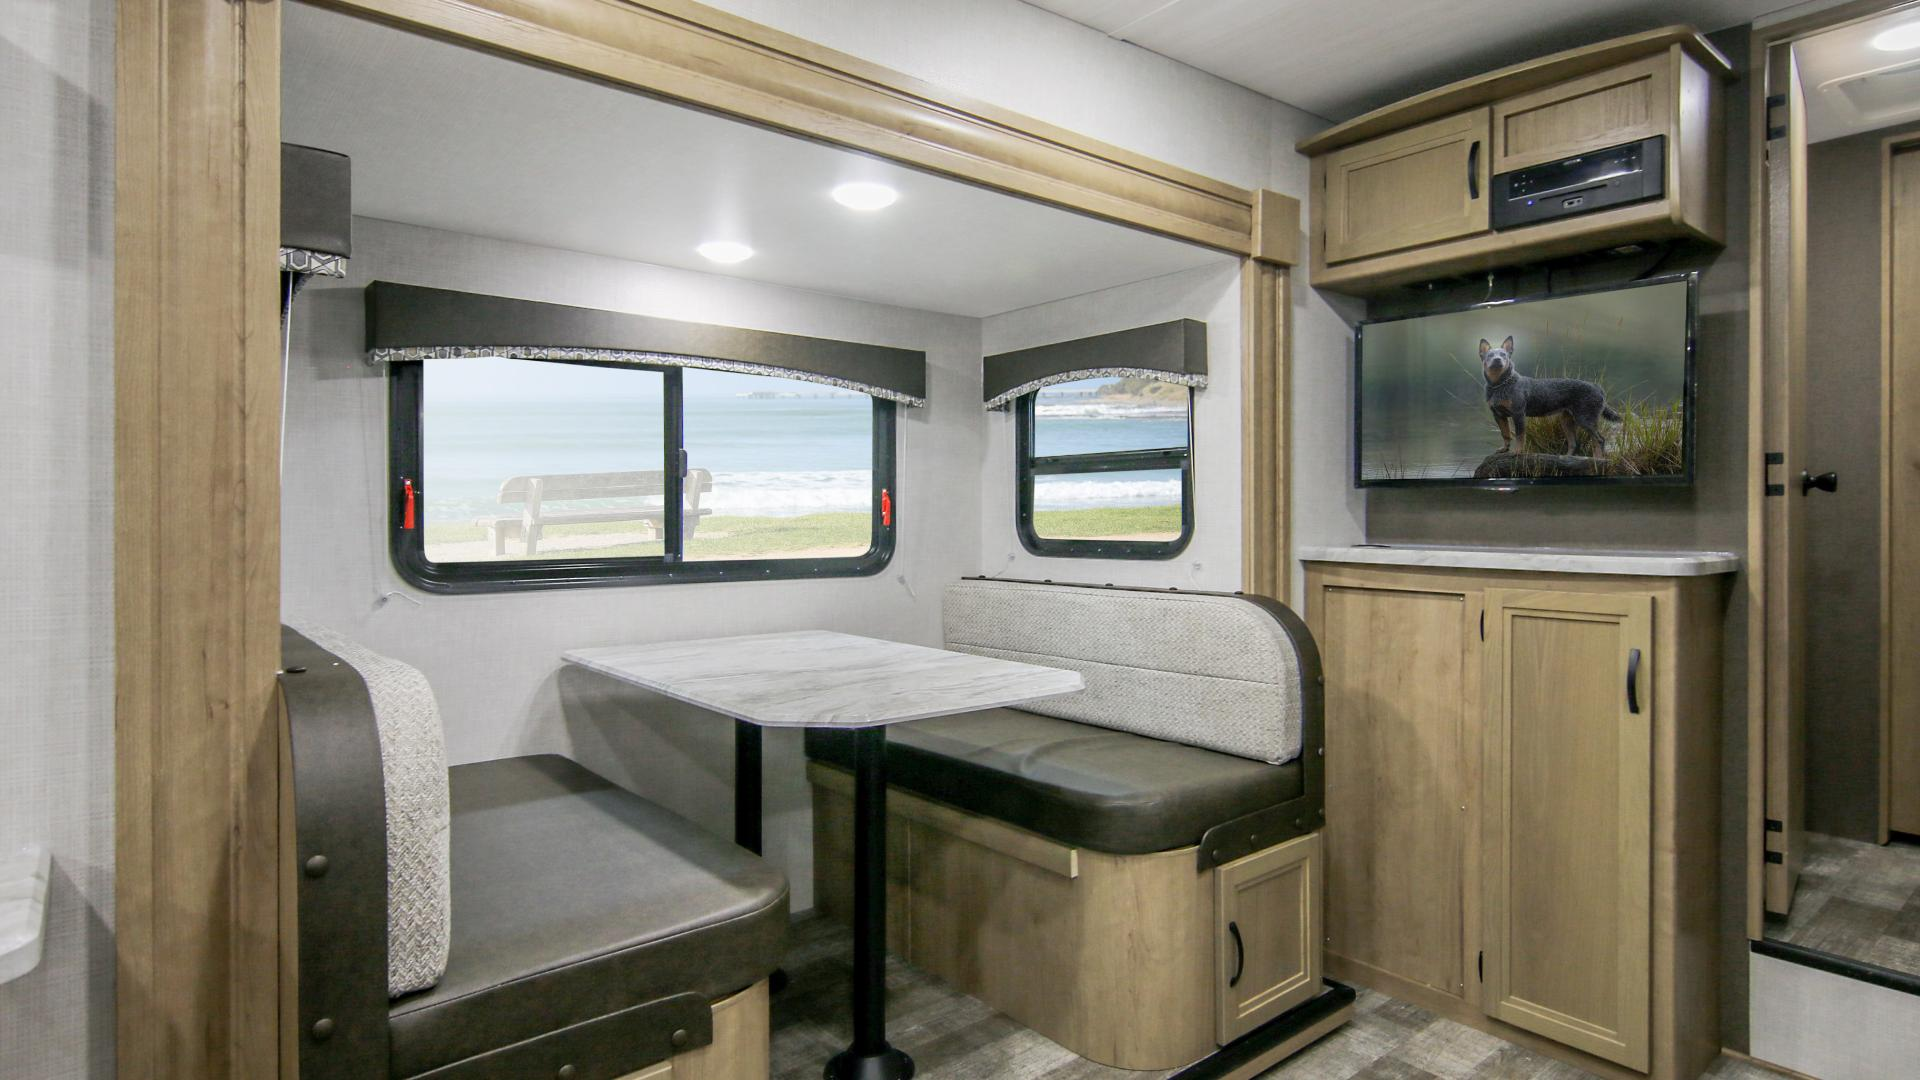 Winnebago Micro Minnie Fifth Wheel Dinette 2405RL